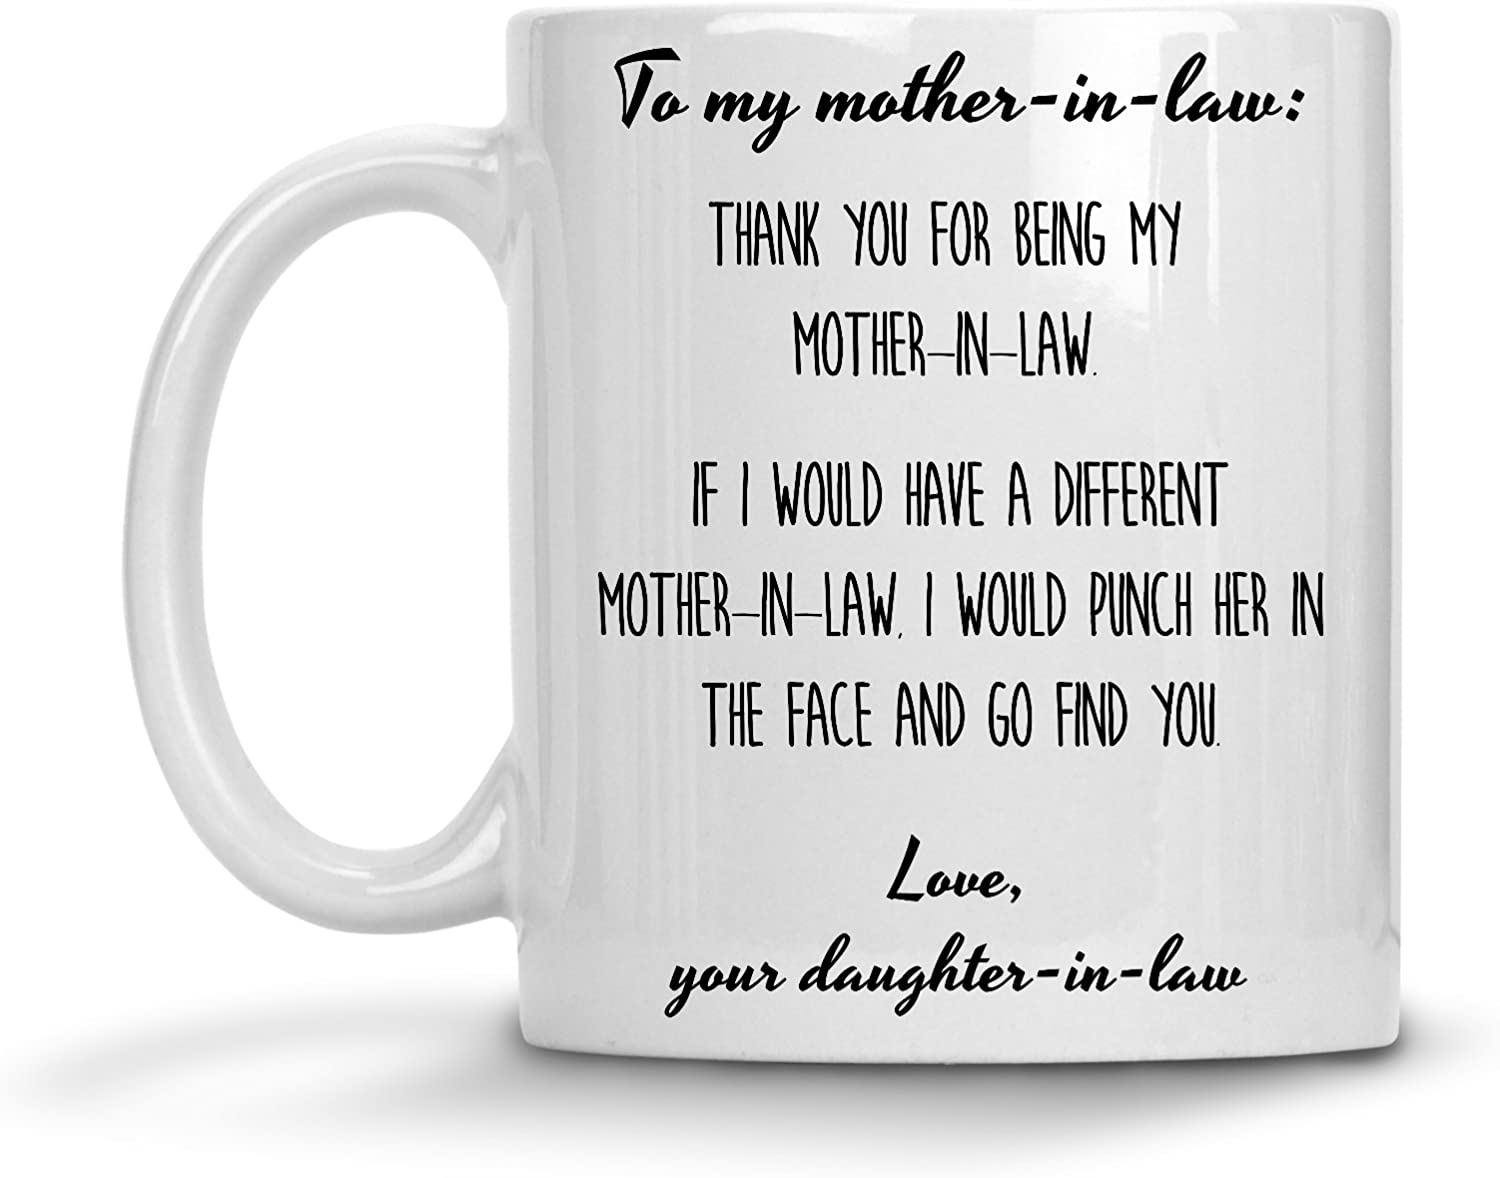 Funny Gift For Mother In Law Mom Mug Mother In Law Gift Cute Mug Christmas Gift